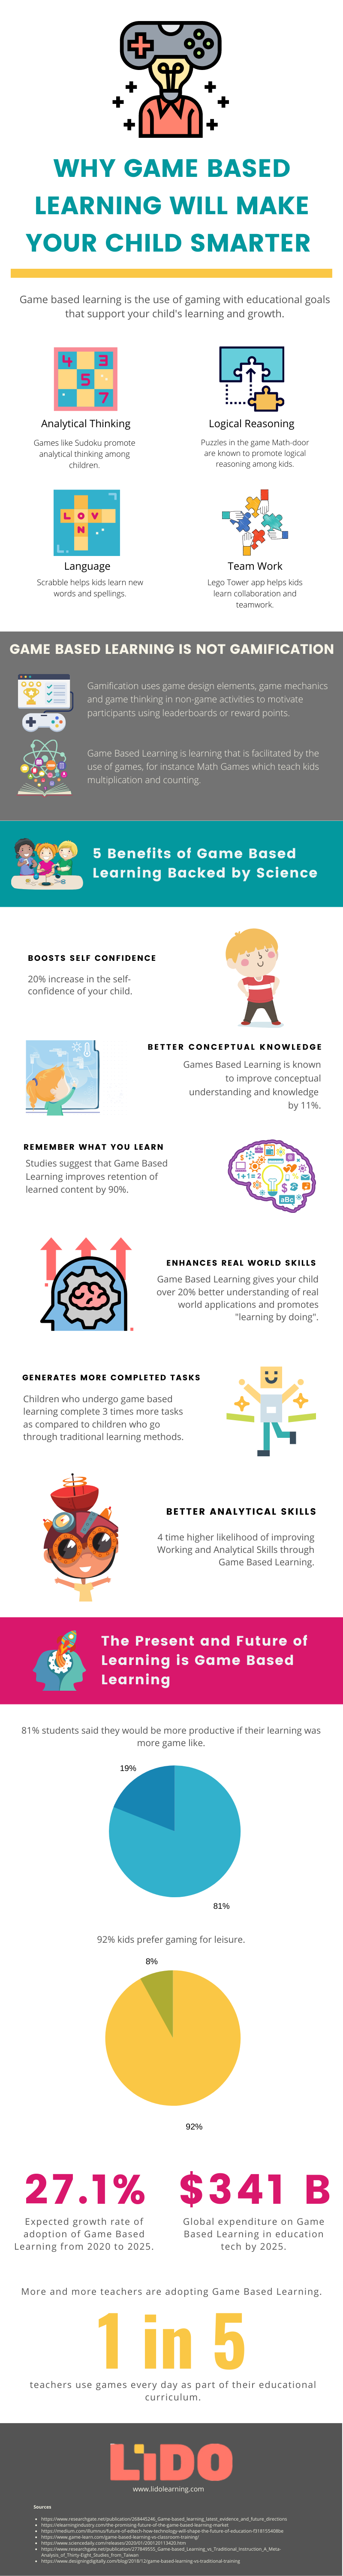 why game based learning will make your child smarter